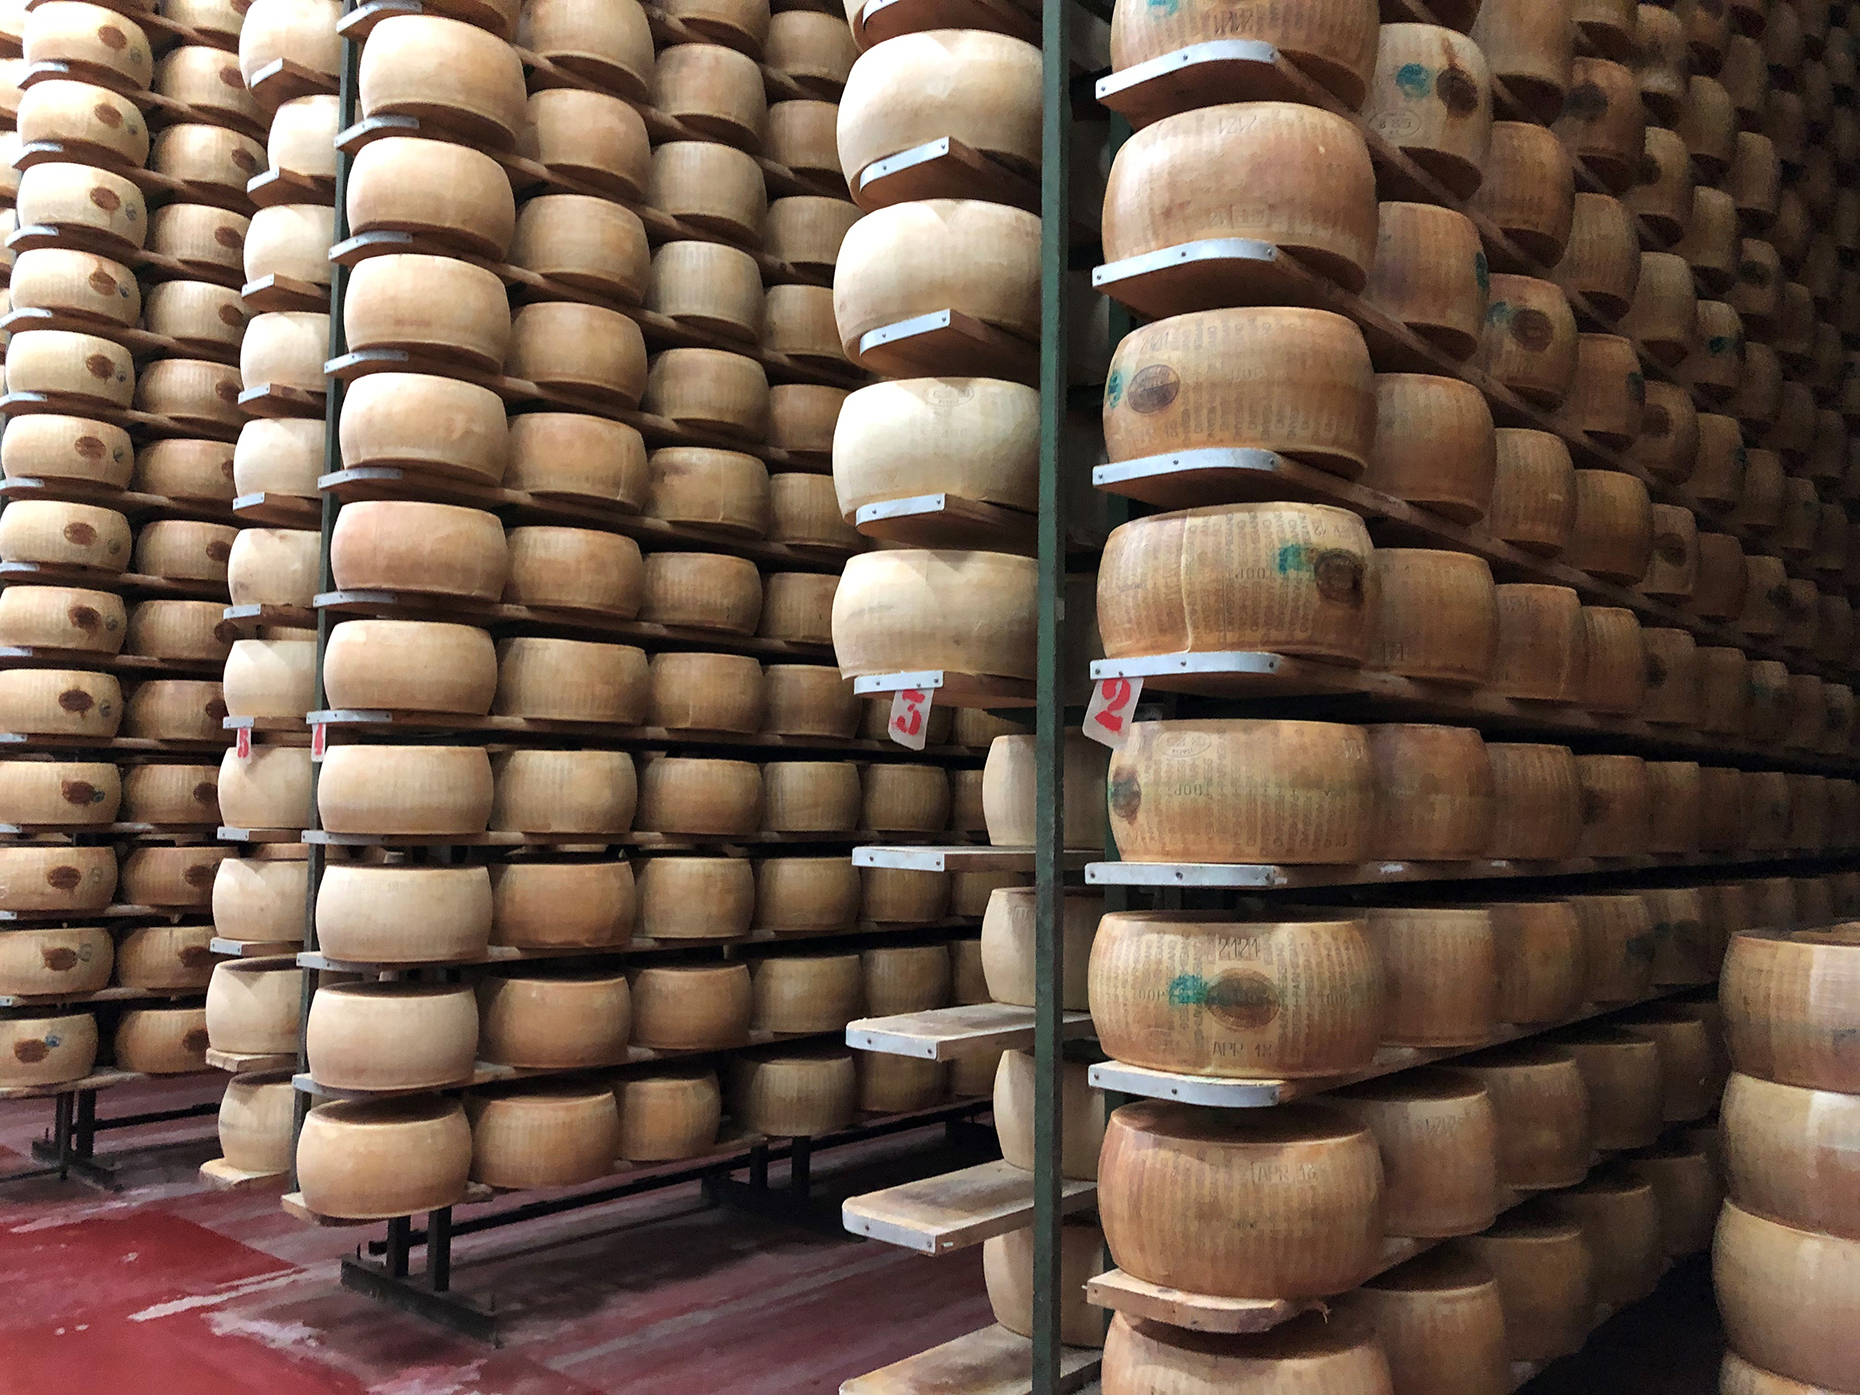 Parmesan in warehouse